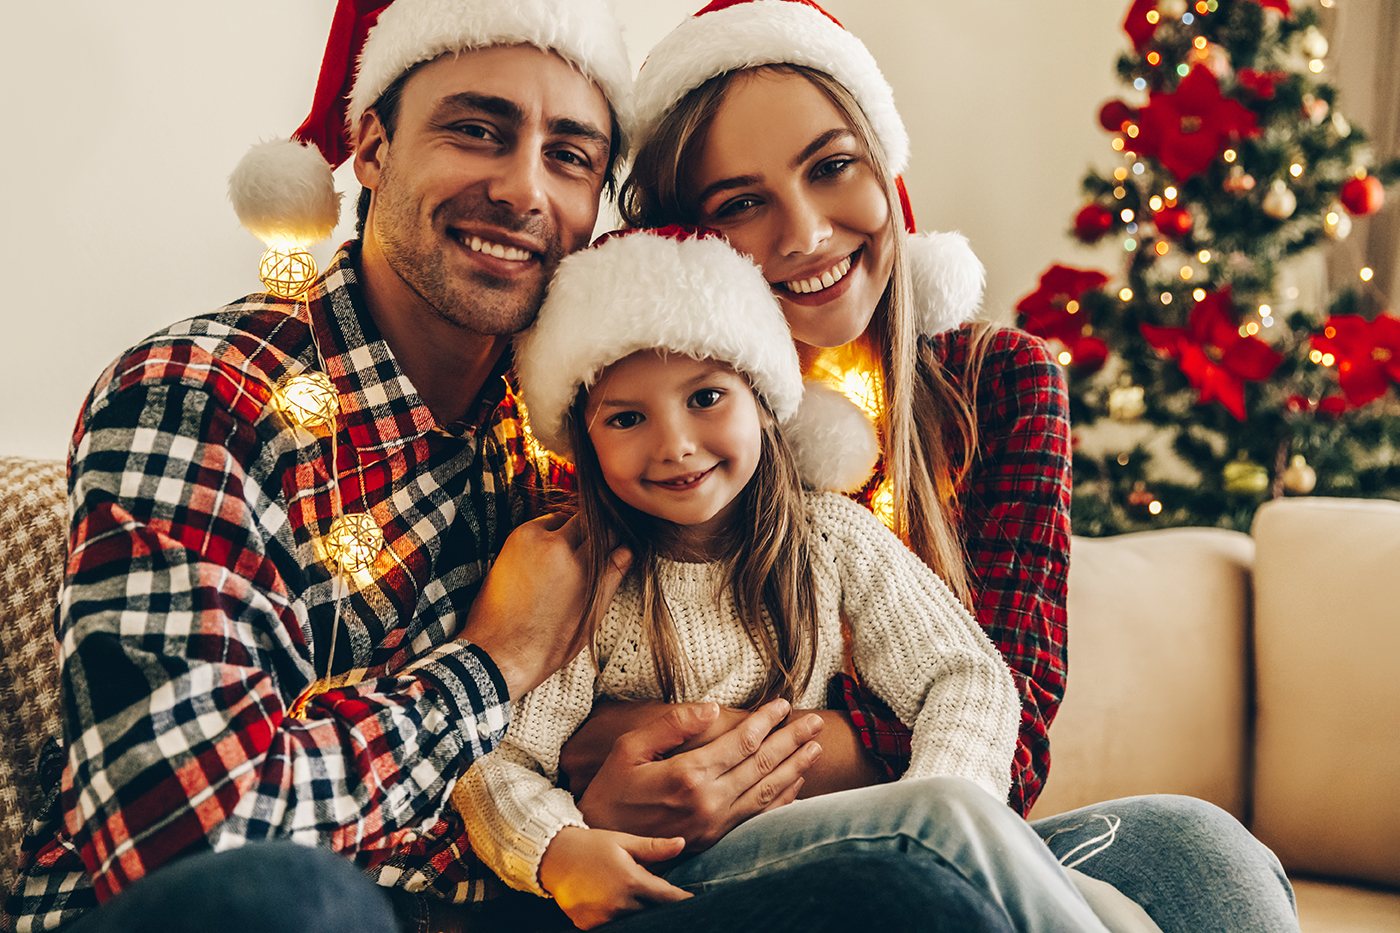 family smiling during christmastime